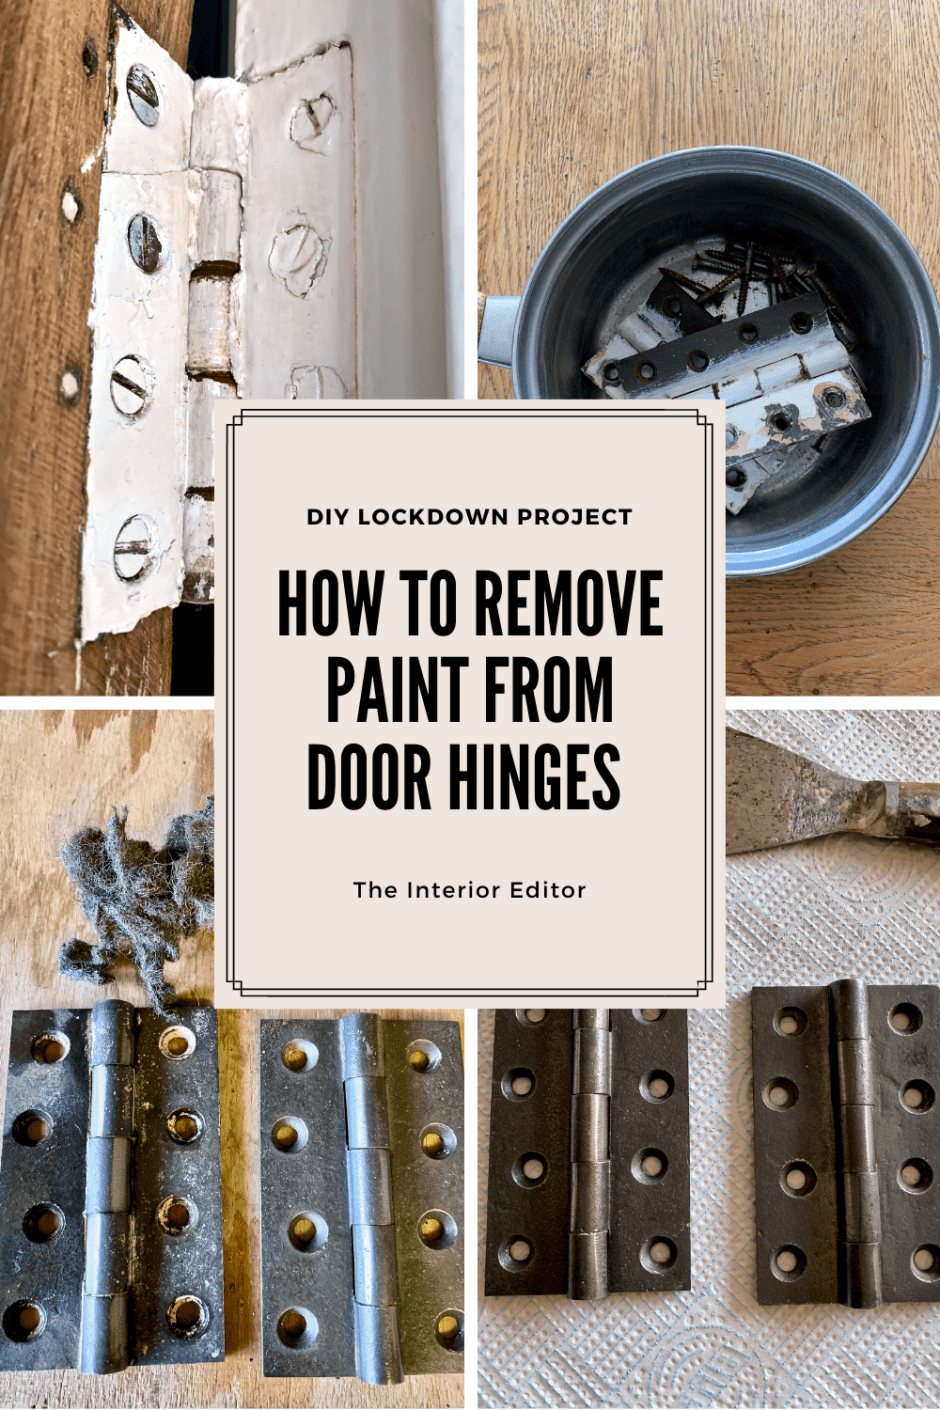 How To Remove Paint From Hinges - Naturally - An easy way to remove paint from hardware, hinges and screws without chemicals